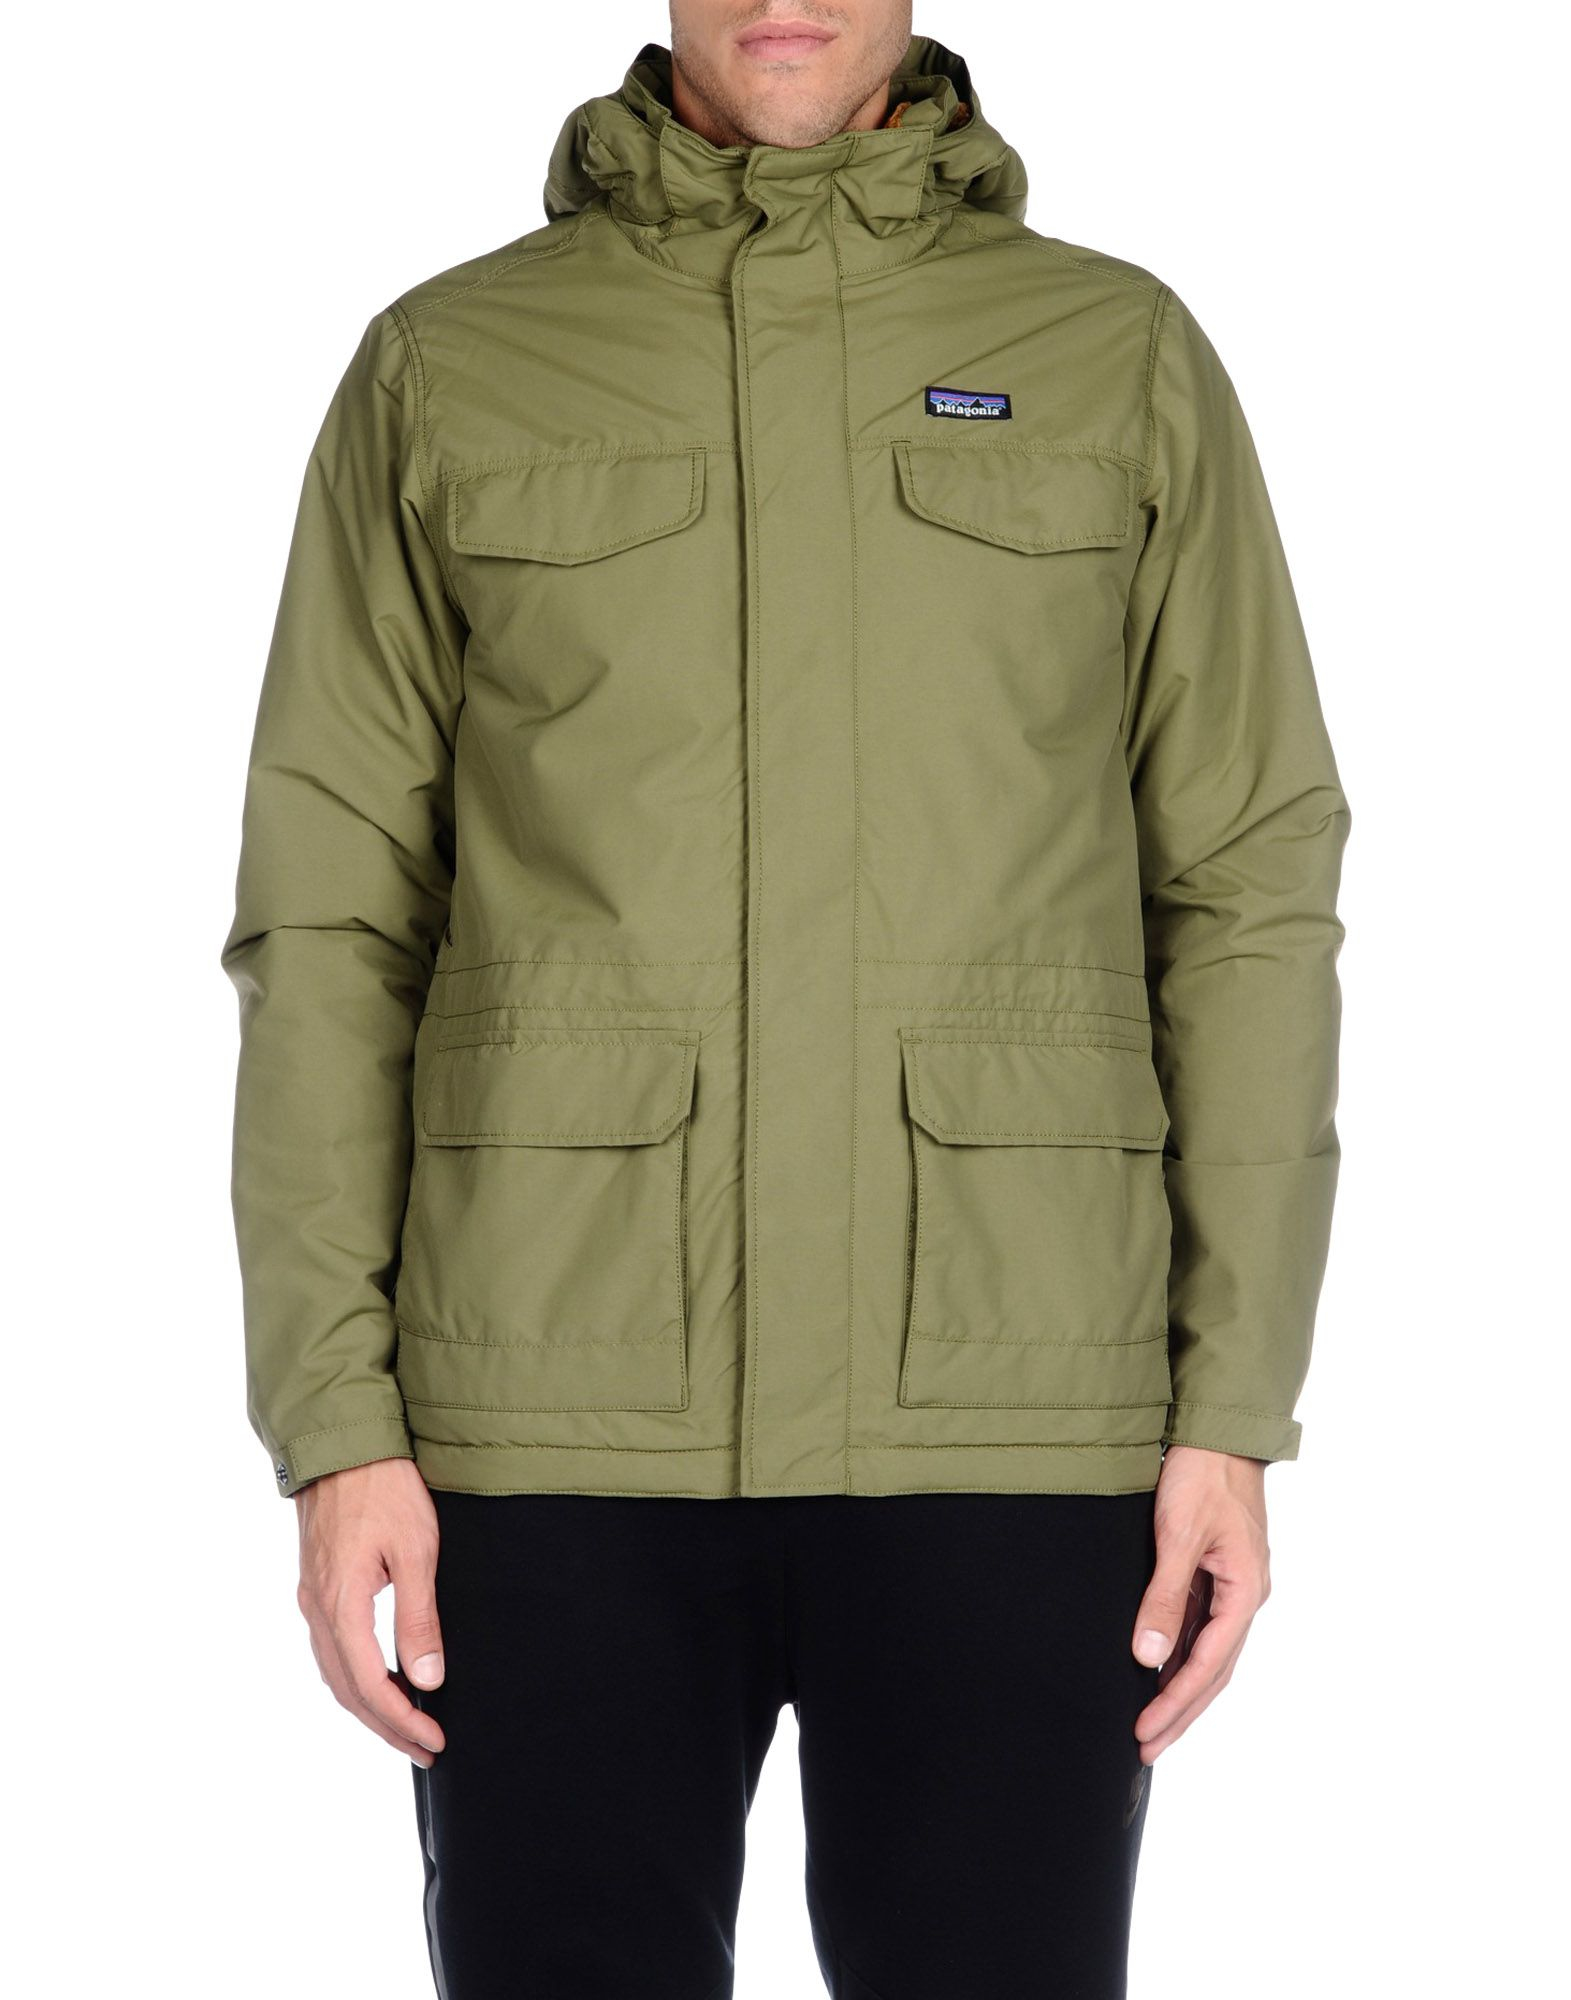 patagonia single men Patagonia men's alpine houdini jacket  alpine helmet-compatible hood with laminated visor and single-pull  men's fit guide details & info patagonia's.